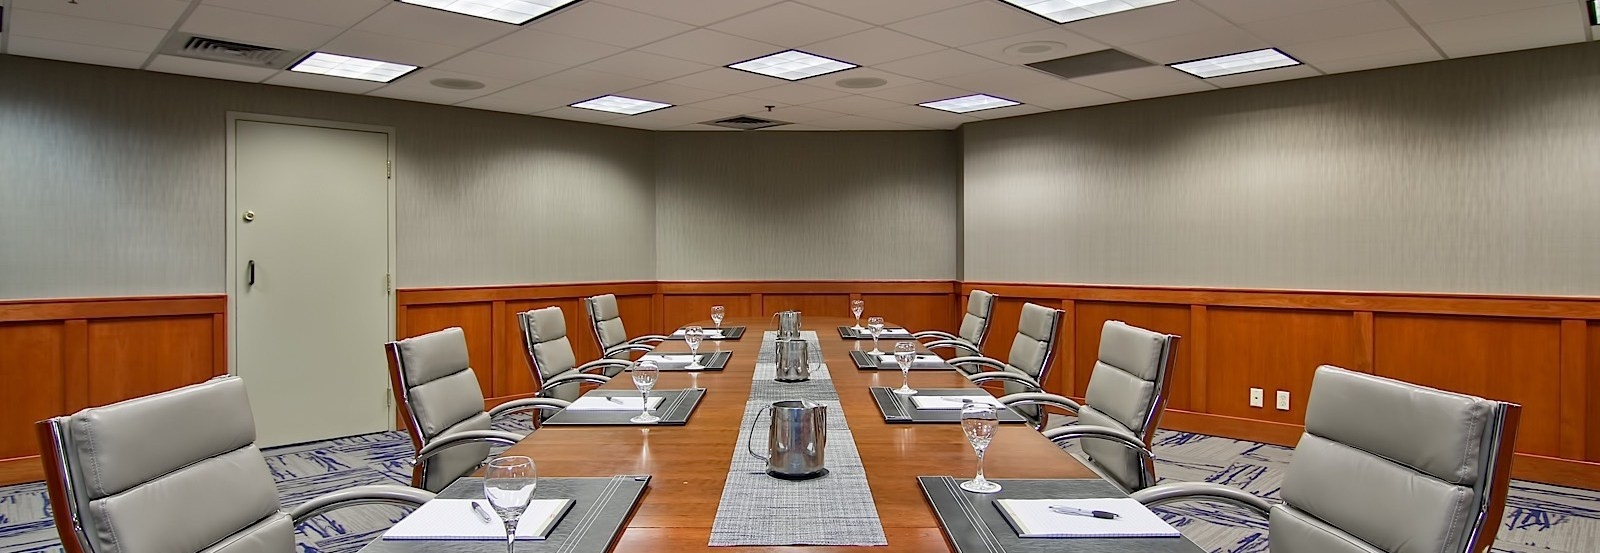 A boardroom table in the Cattails room at The Grove Hotel